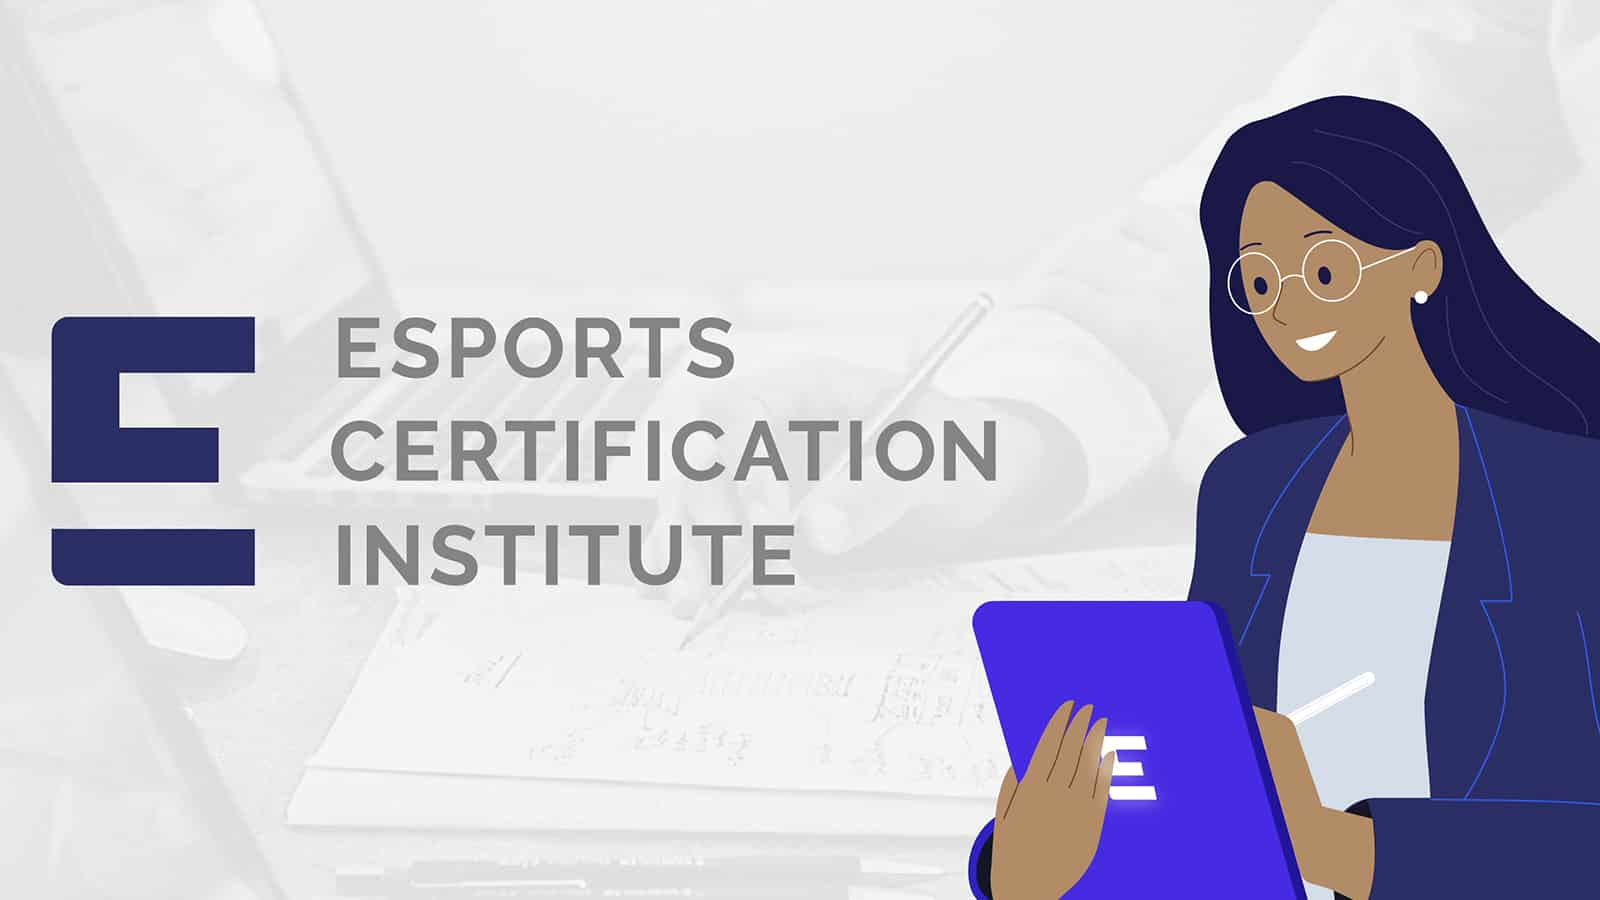 Esports certification has been taken down amidst controversy